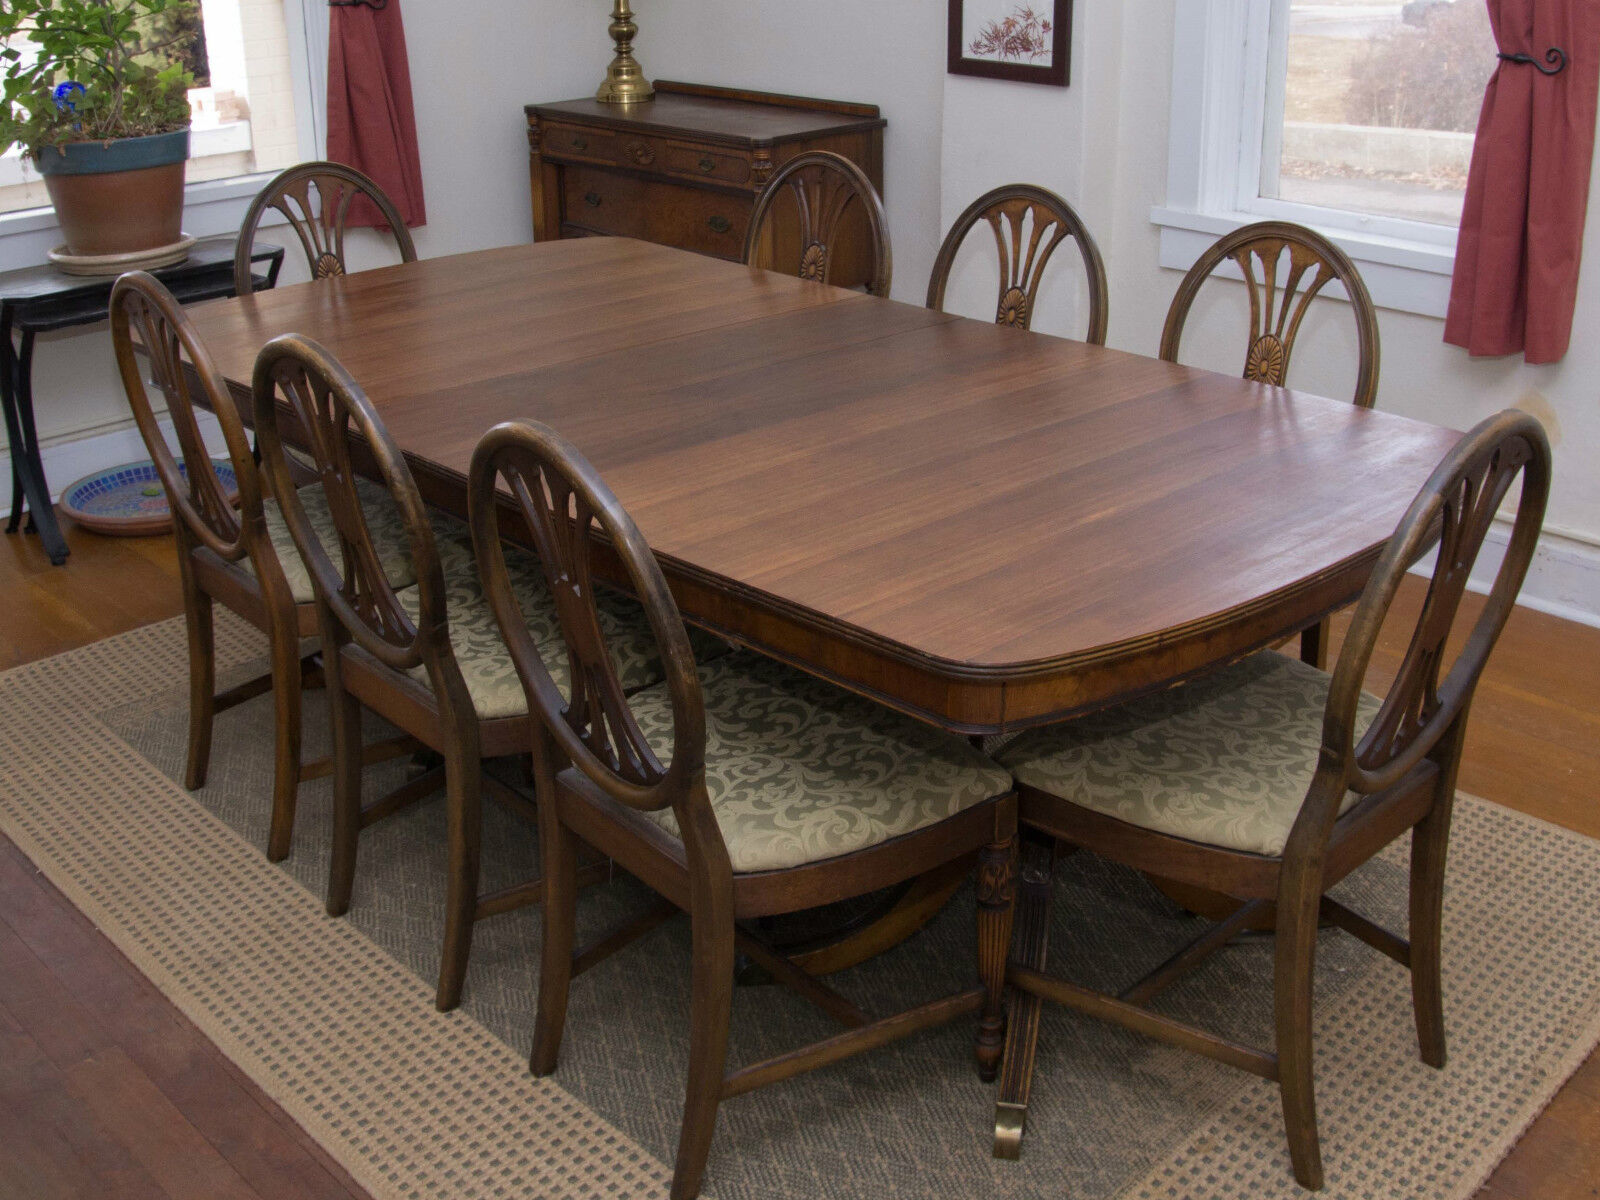 Berkey & Gay Antique Furniture Dining Set Table/Chairs, Hutch, Buffet, ...